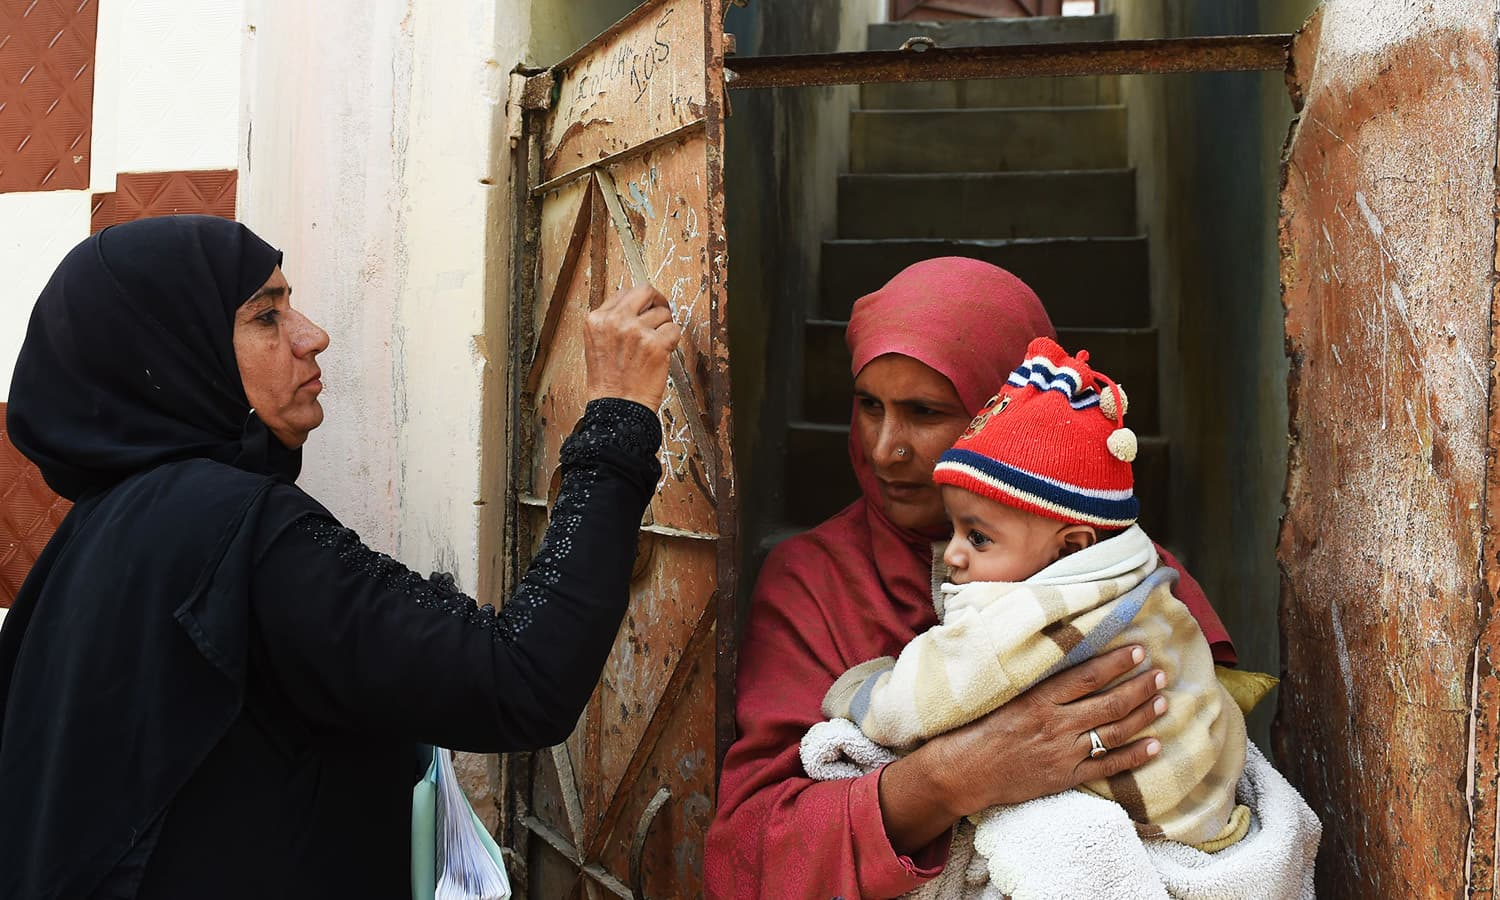 Health worker Shehnaz Ayaz (L) marks a door after administering polio drops to a child during a door-to-door polio immunisation campaign in Karachi.—AFP